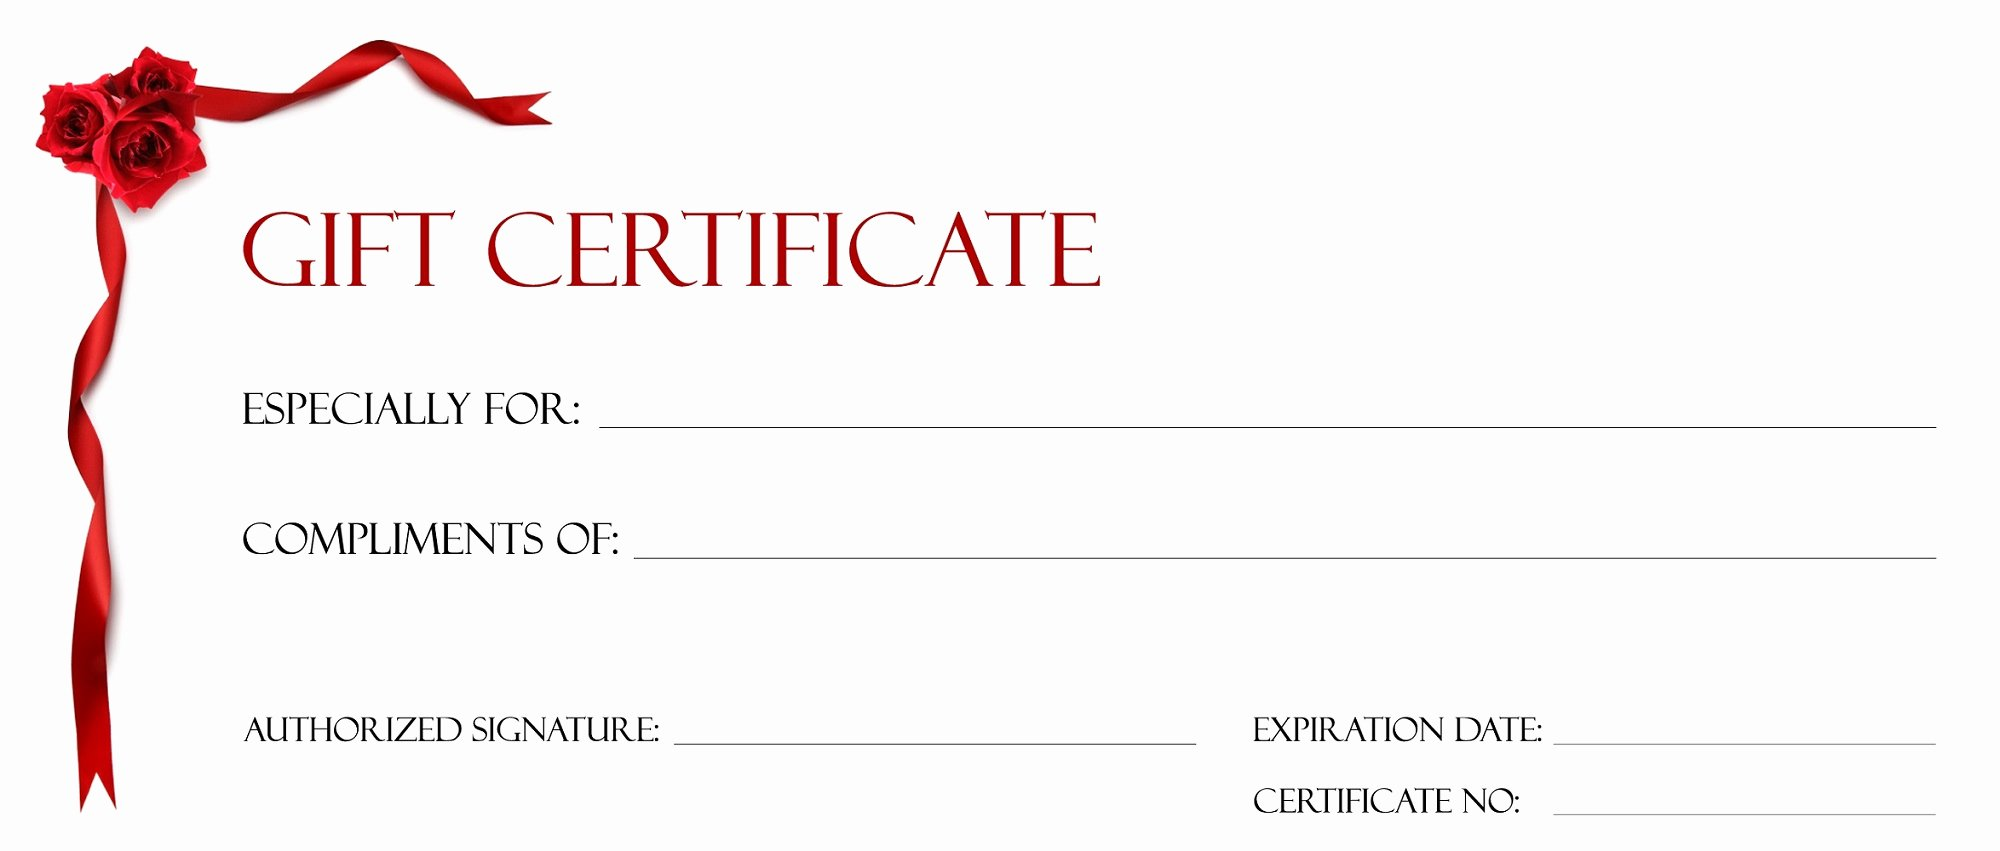 Gift Certificate Template for Kids Blanks